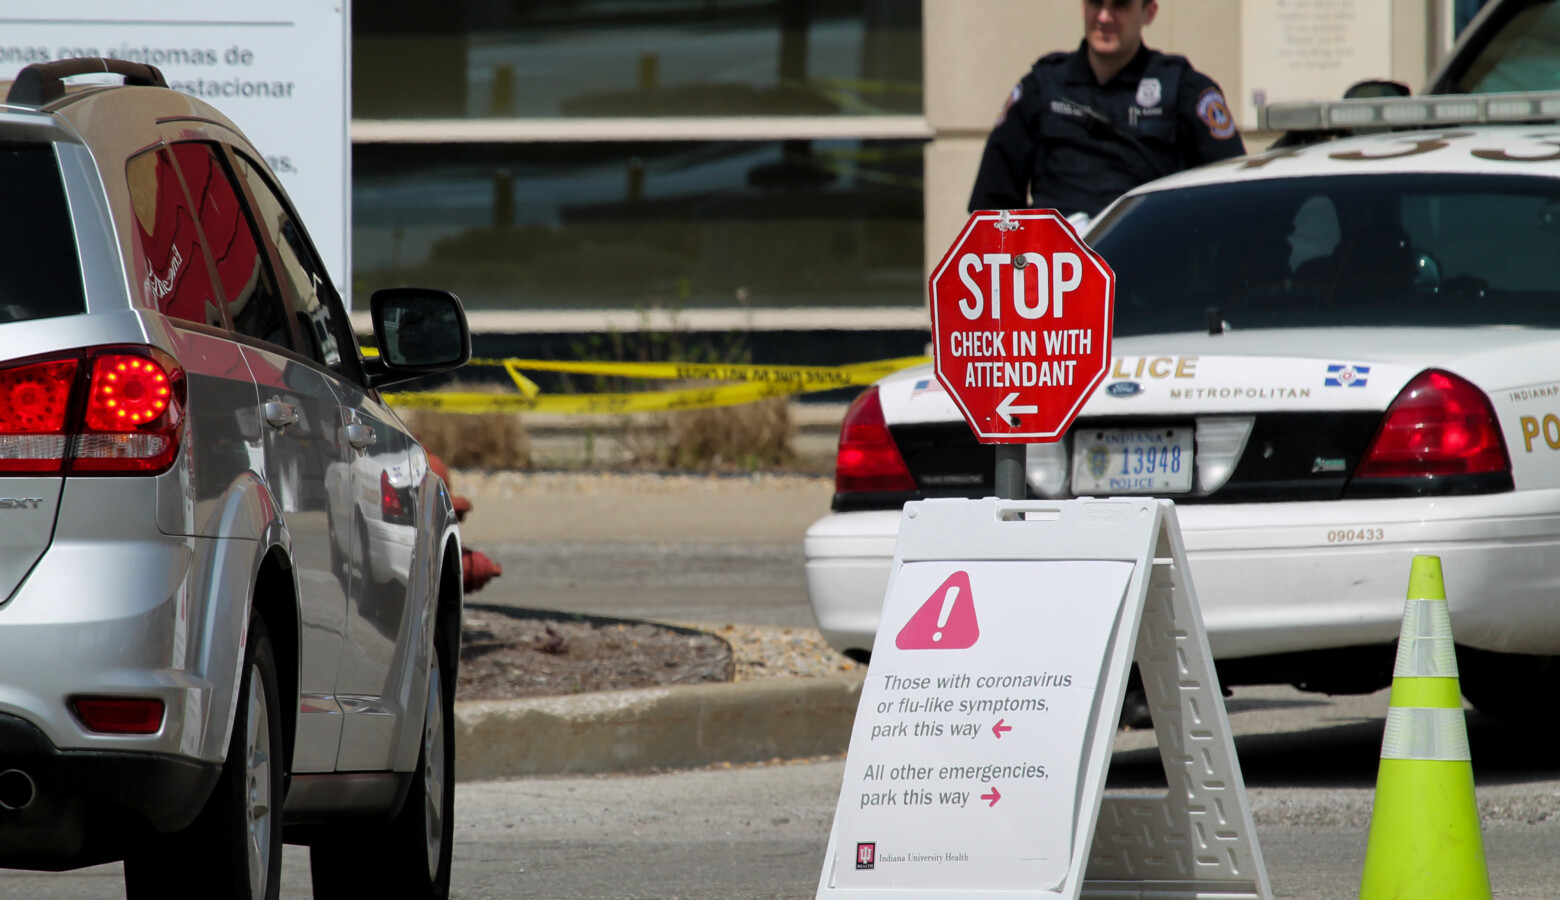 In front of Indiana University Health's Methodist Hospital, signs direct emergency room patients if they are experiencing COVID-19 symptoms. (Lauren Chapman/IPB News)